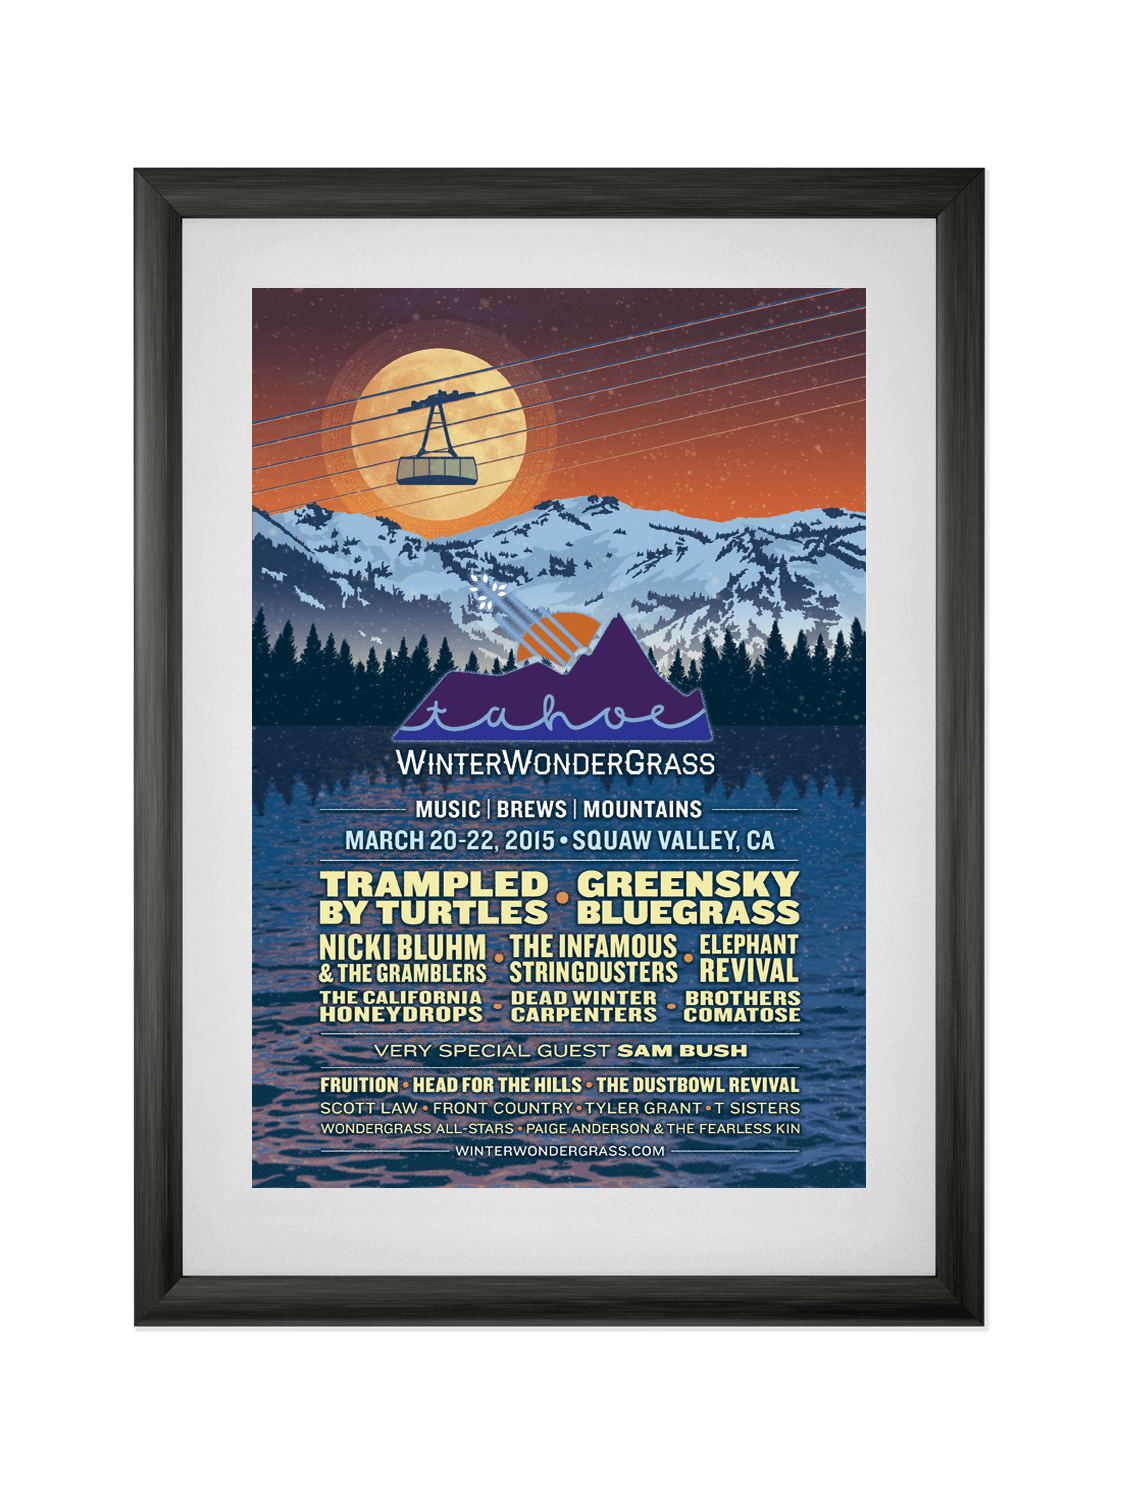 WINTER WONDERGRASS • SQUAW VALLEY 2015  Poster for a winter music festival in Squaw Valley, CA, featuring bluegrass and craft beer. Learn more.